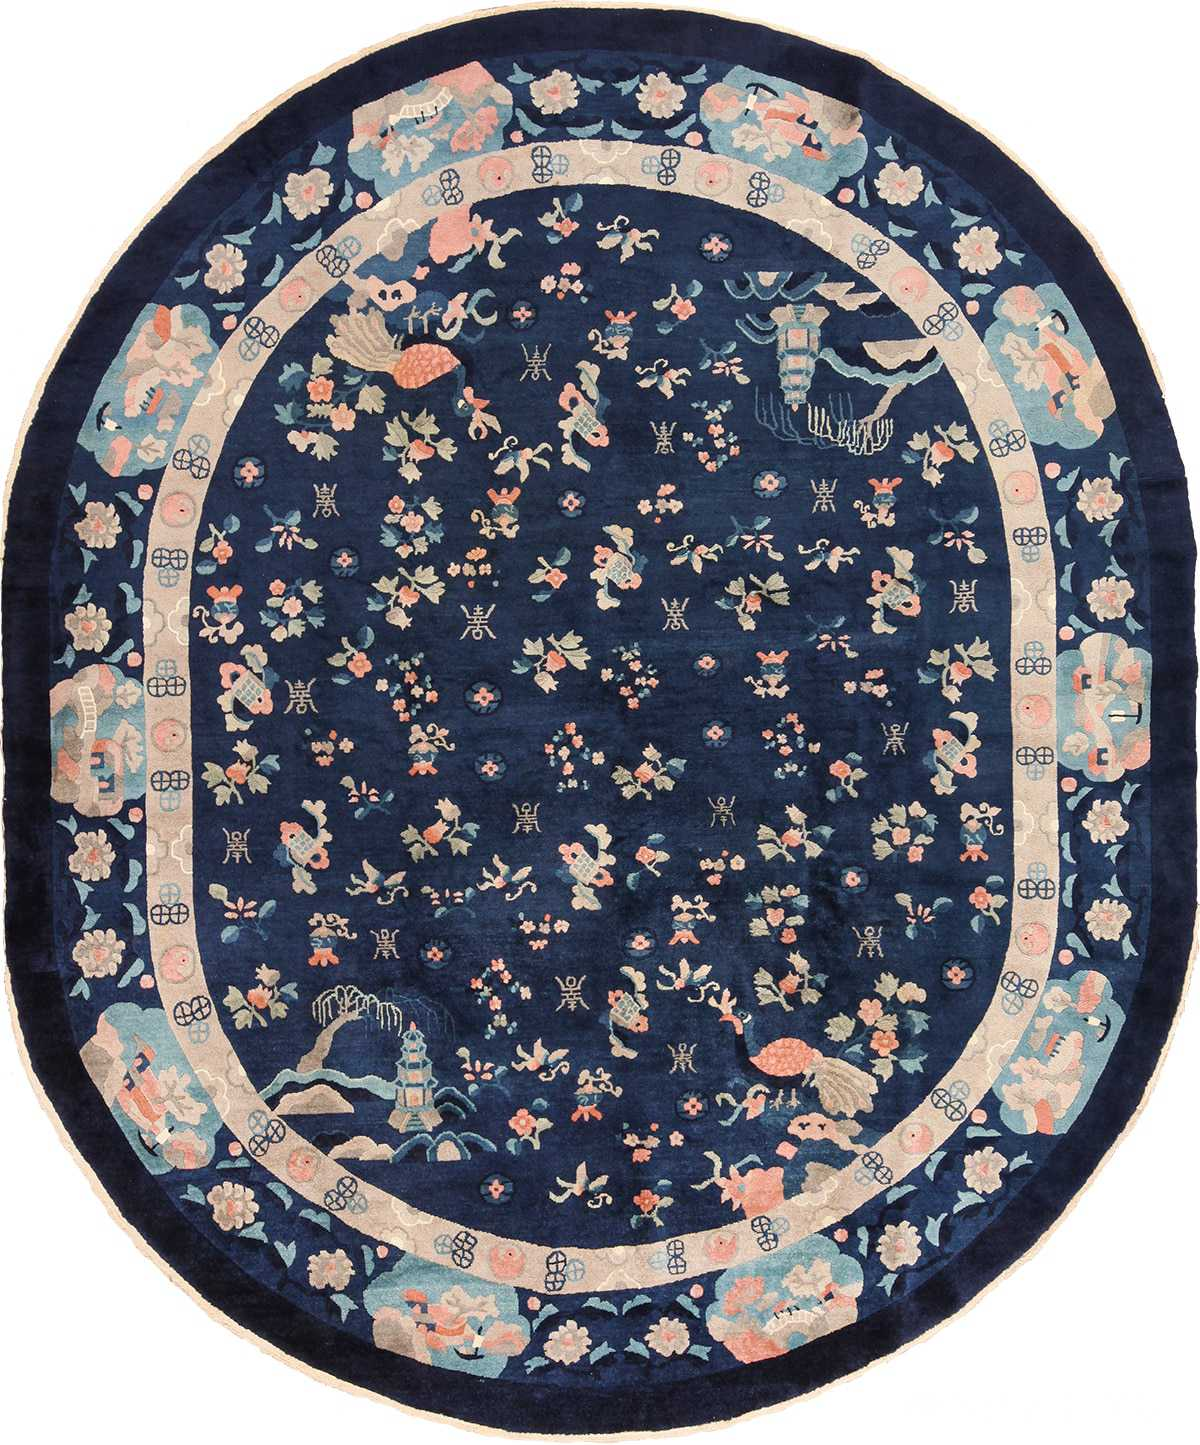 Oval Navy Blue Background Antique Chinese Rug 49593